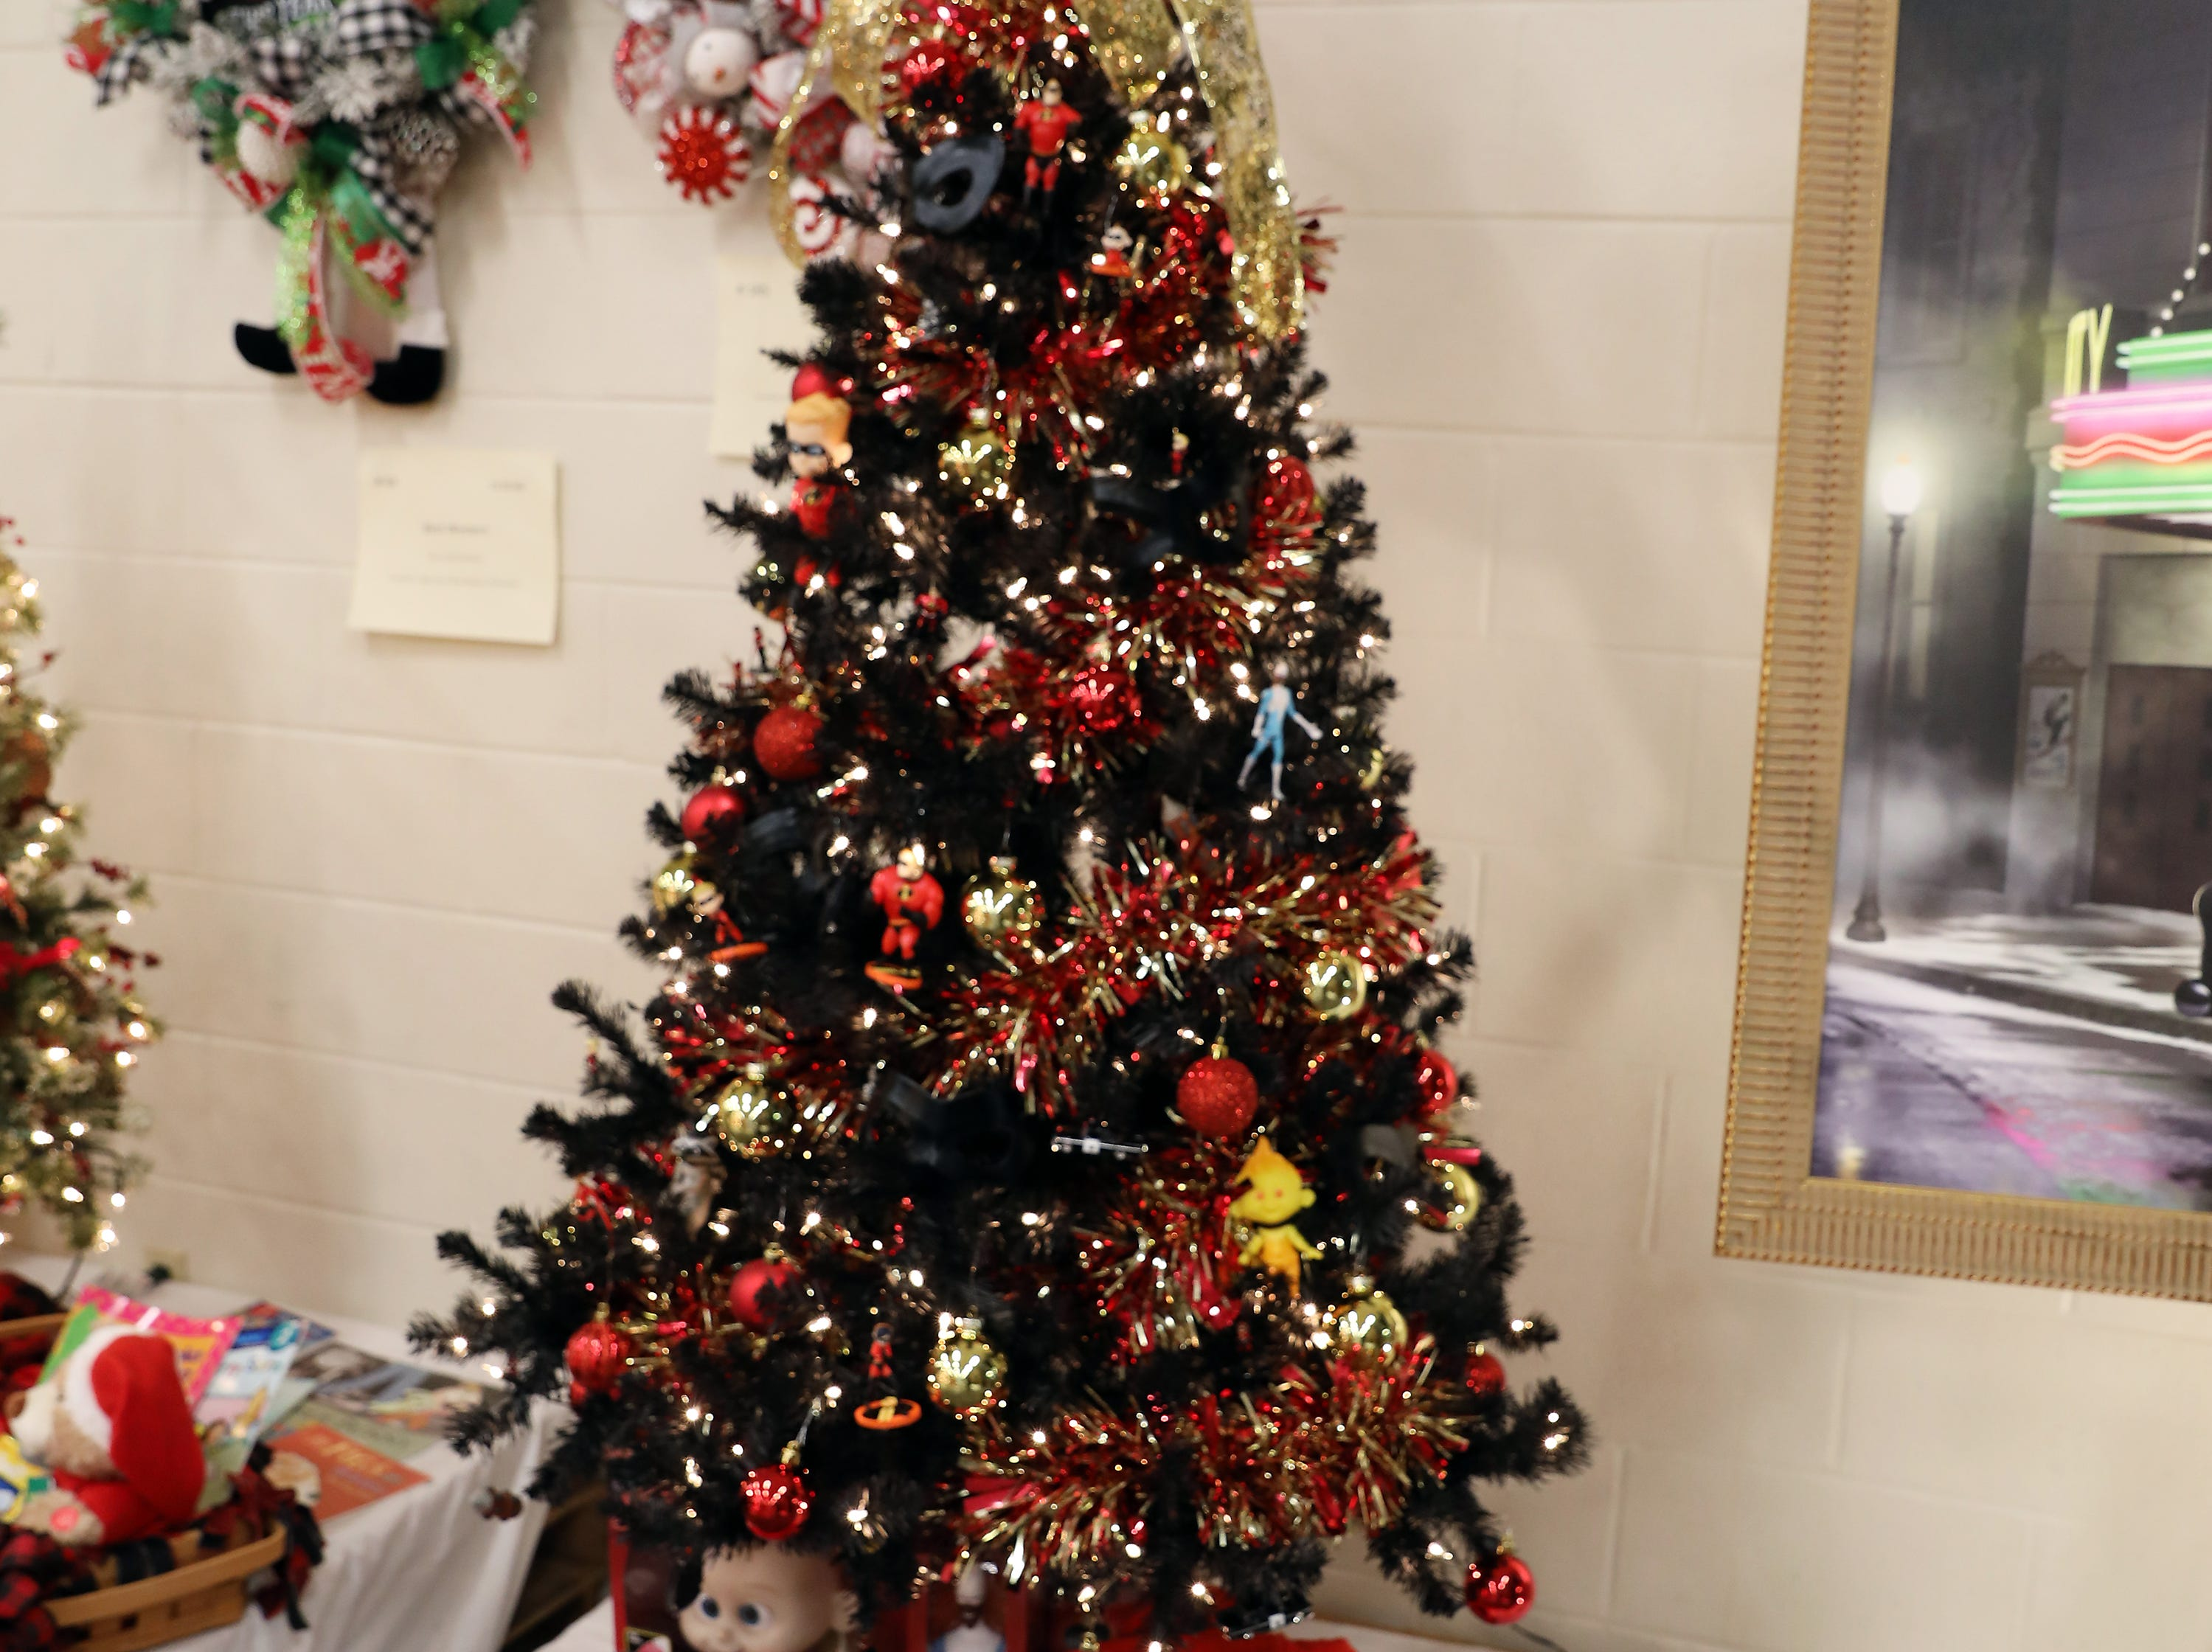 2135:30 PMWalmart North Large TreeIncrediblesA large Christmas decorated in the Incredibles theme.Incredibles toy, Gas powered mini bike and $500 Walmart gift card